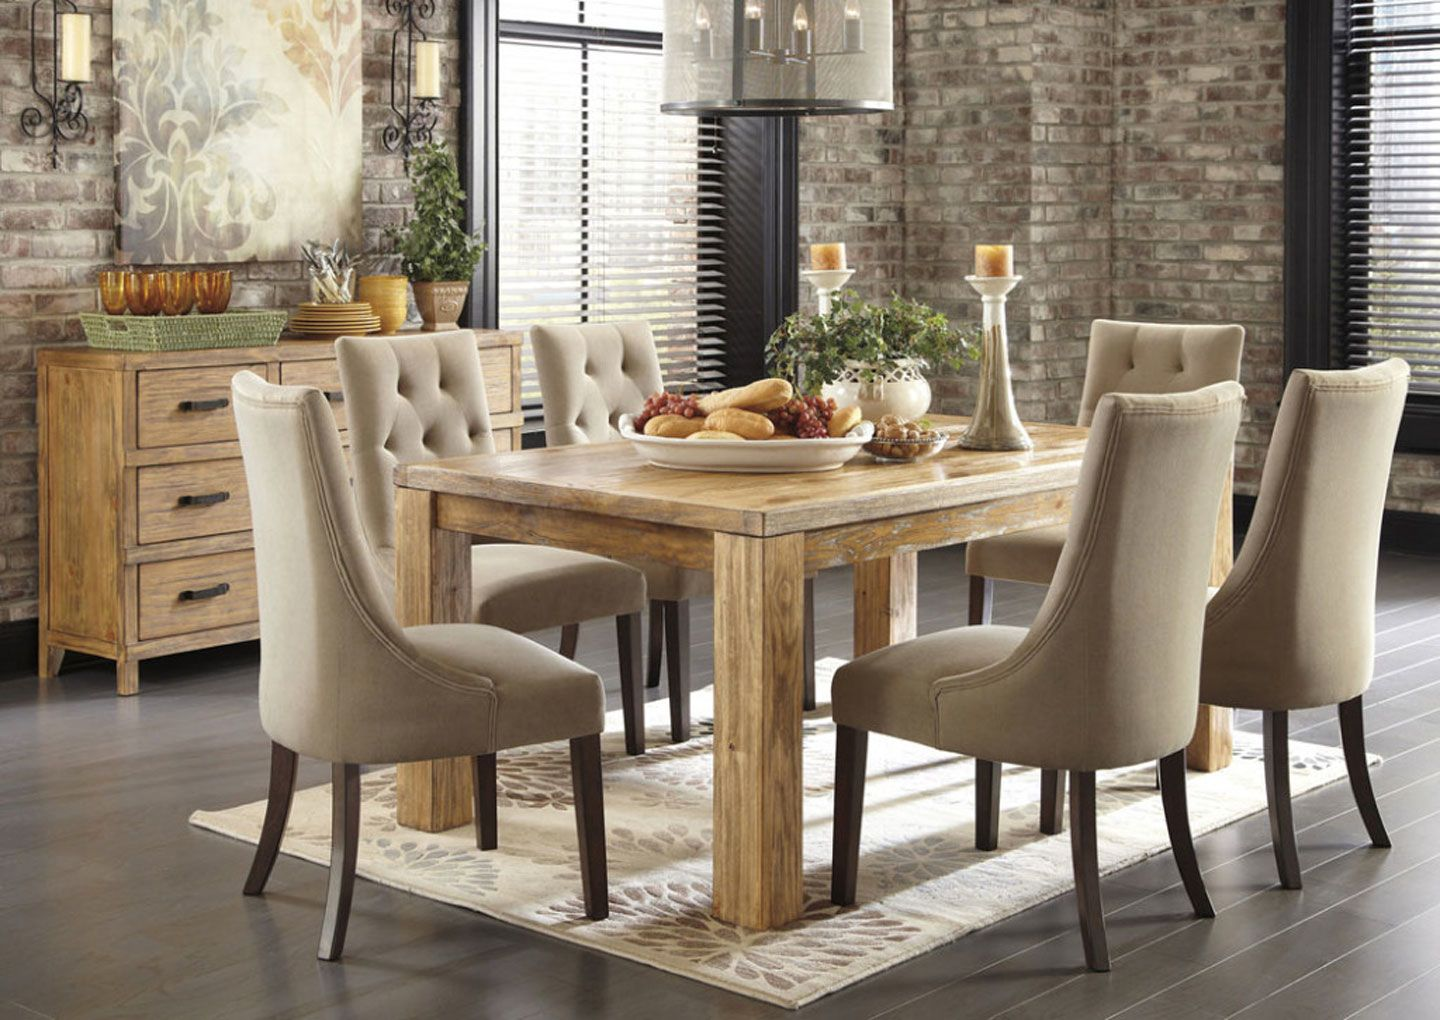 Upholstered dining room chairs with flower vase and decorative upholstered dining room chairs with flower vase and decorative candles dzzzfo